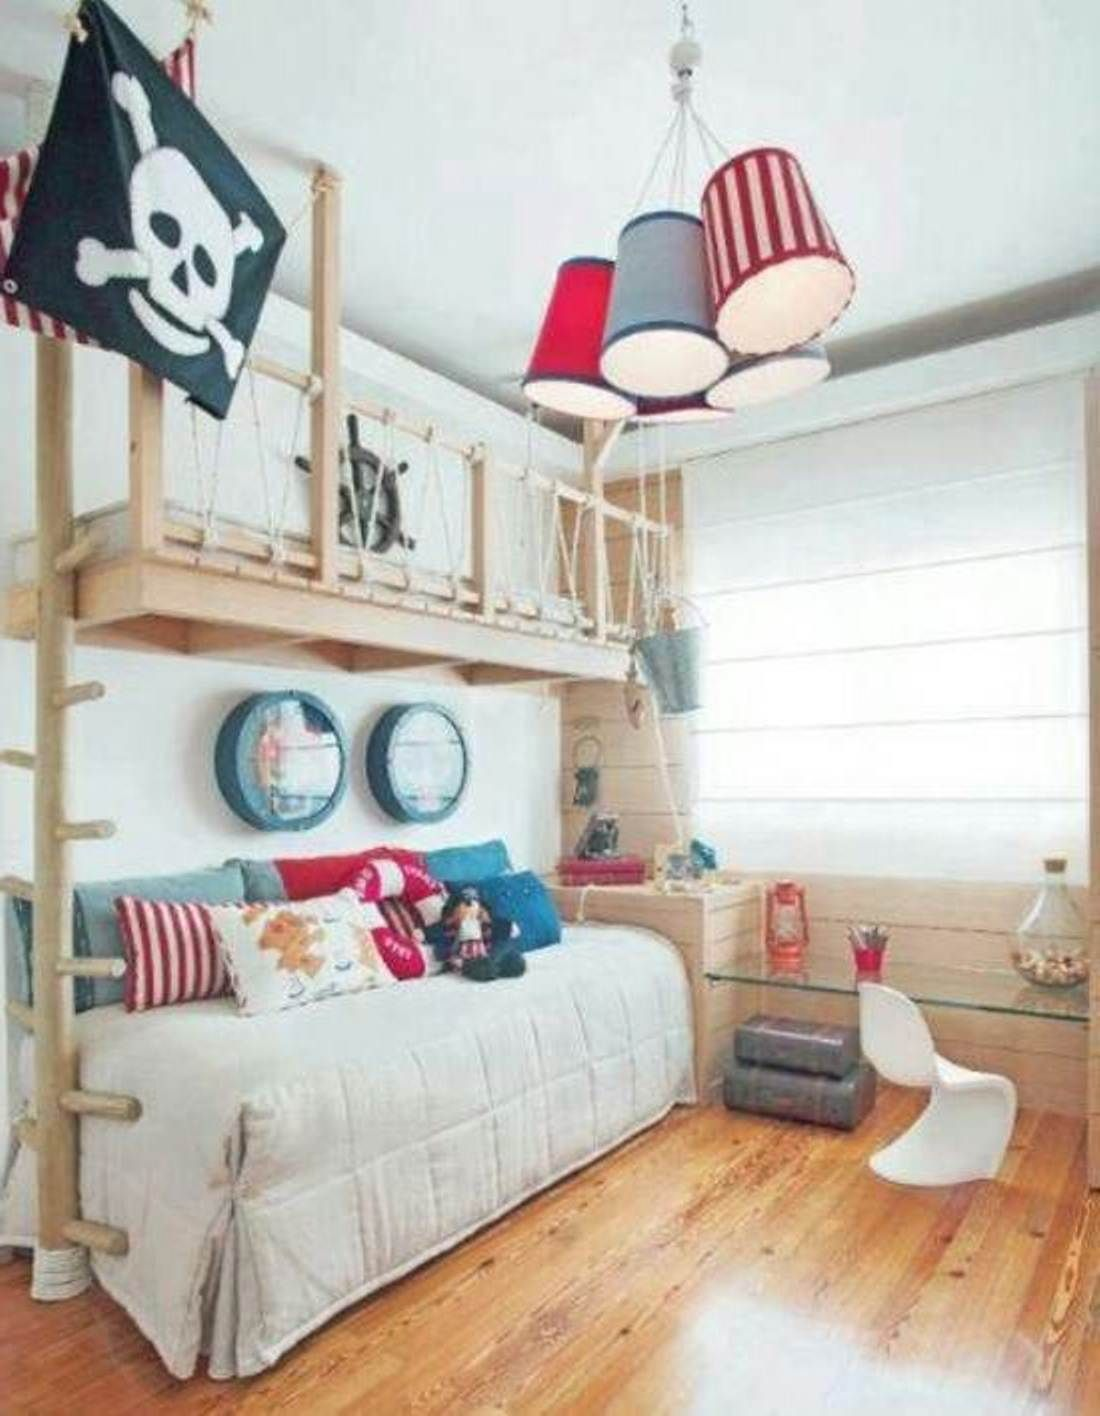 Boys Bedrooms Designs Extraordinary Awesome Pirate Little Boy Bedroom Ideas Boys Bedrooms Design Ideas